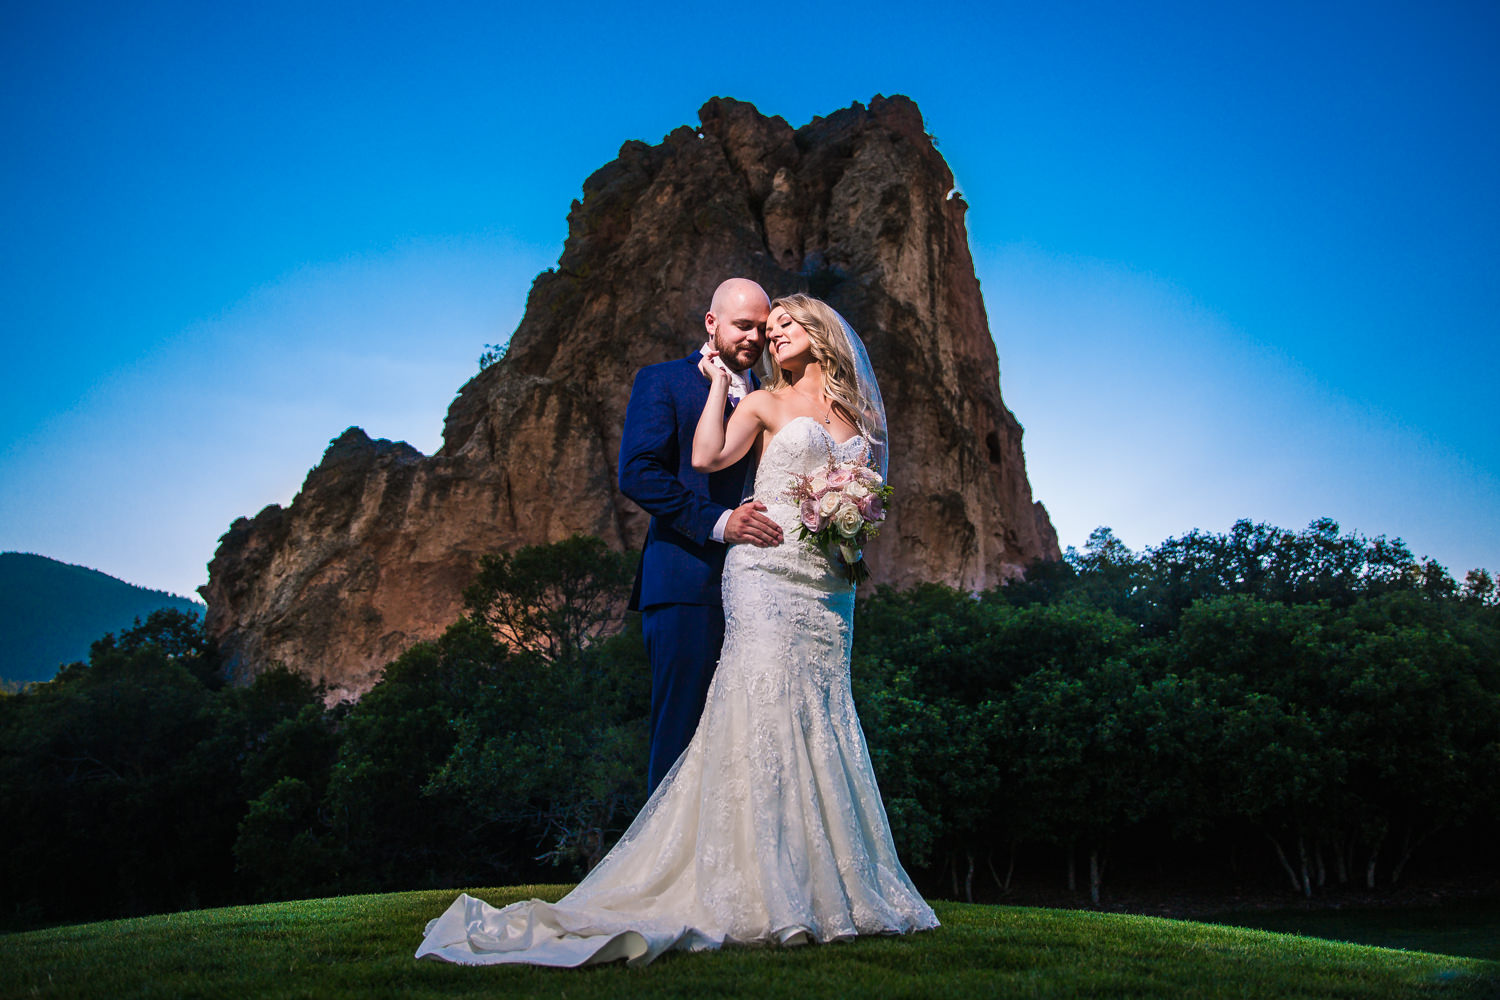 Perry Park Country Club Wedding | Larkspur Colorado wedding photographer | © JMGant Photography